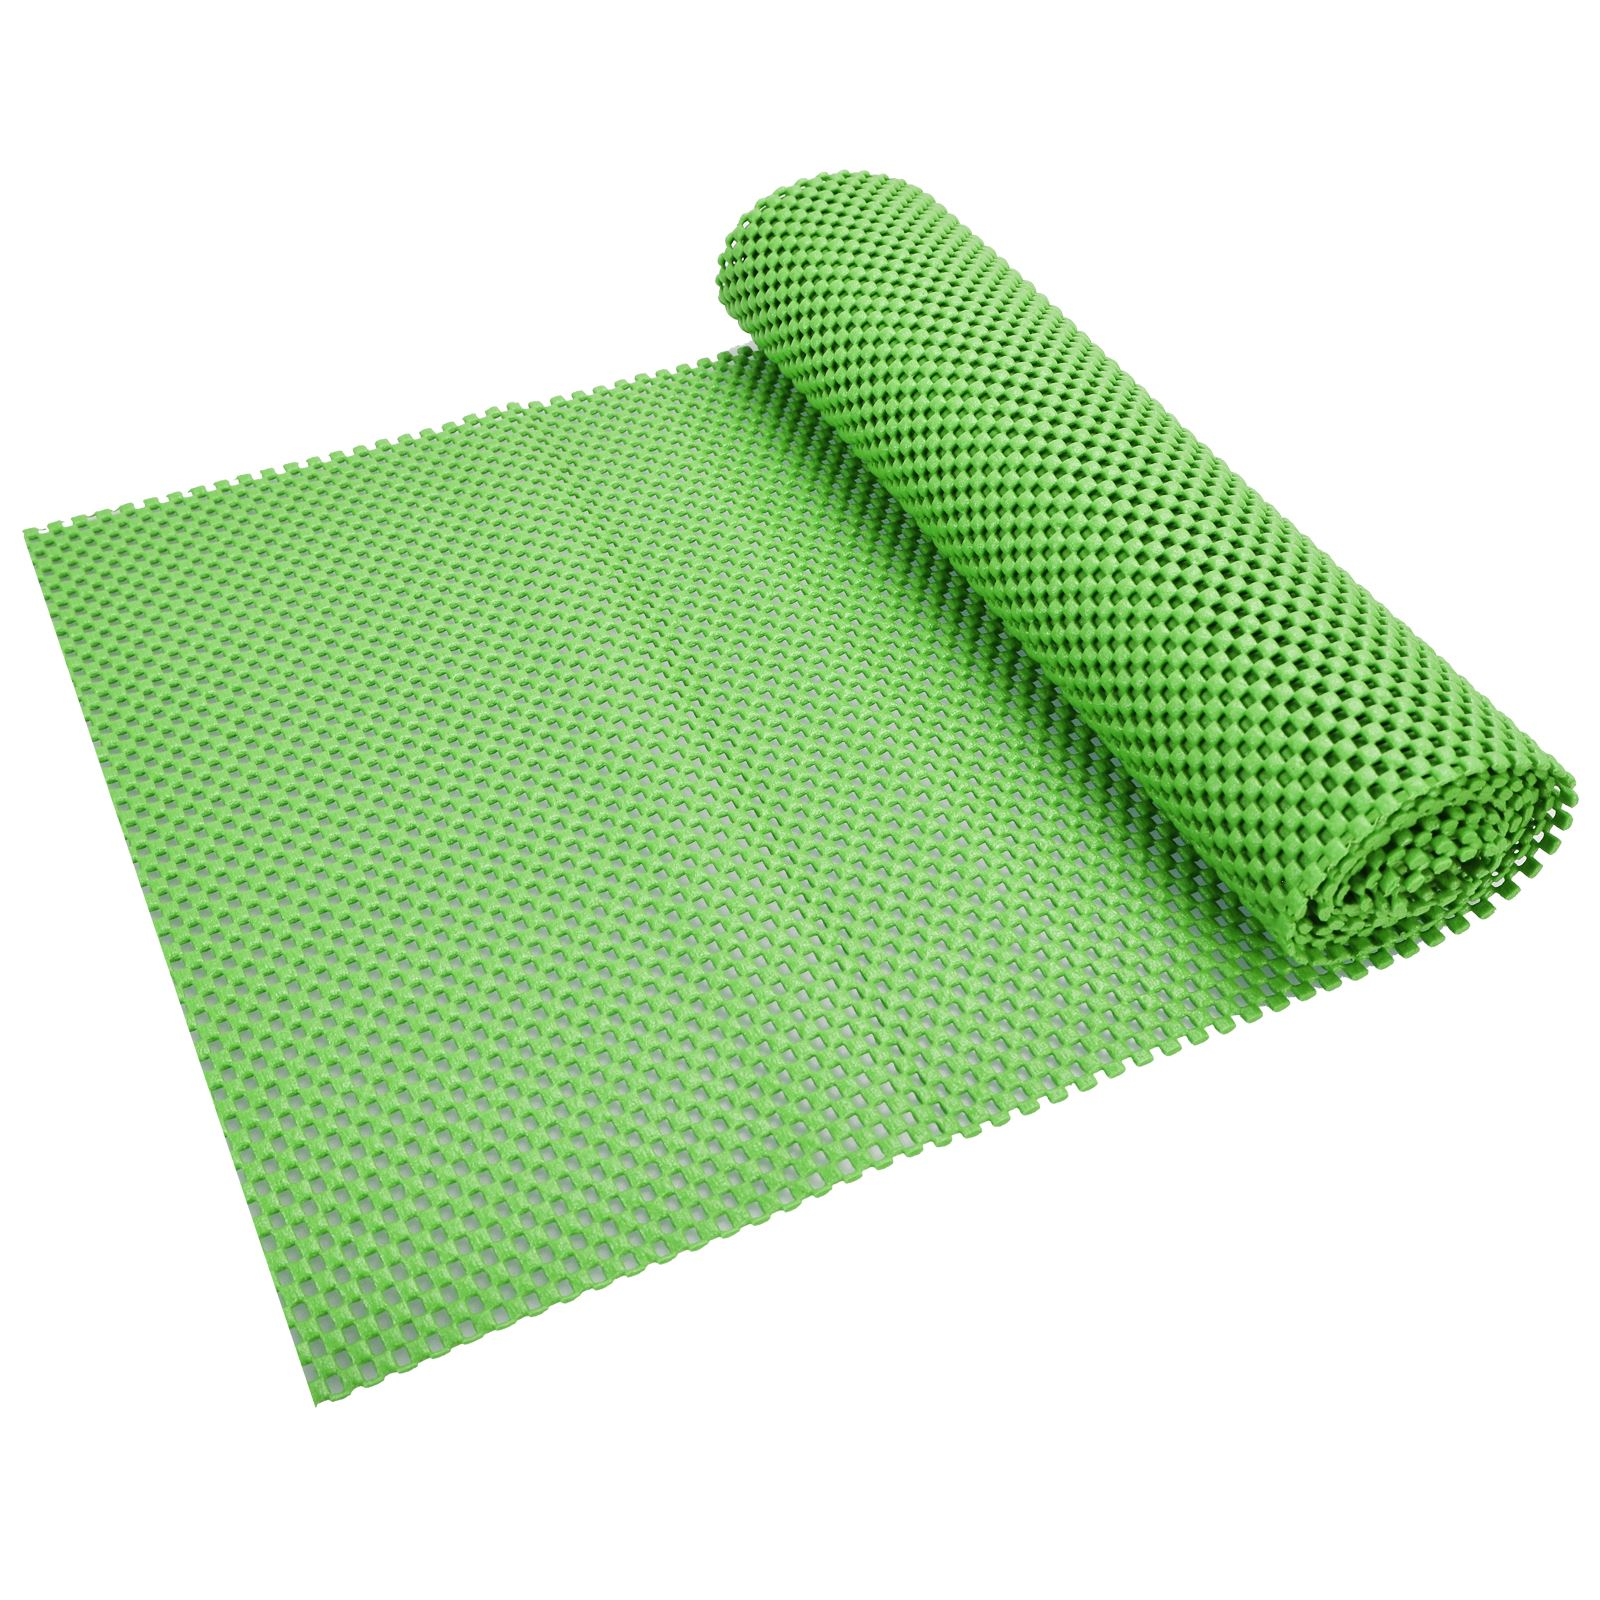 buy slip foam mat kitchen design printed new sale pvc detail non bath mats product hot anti